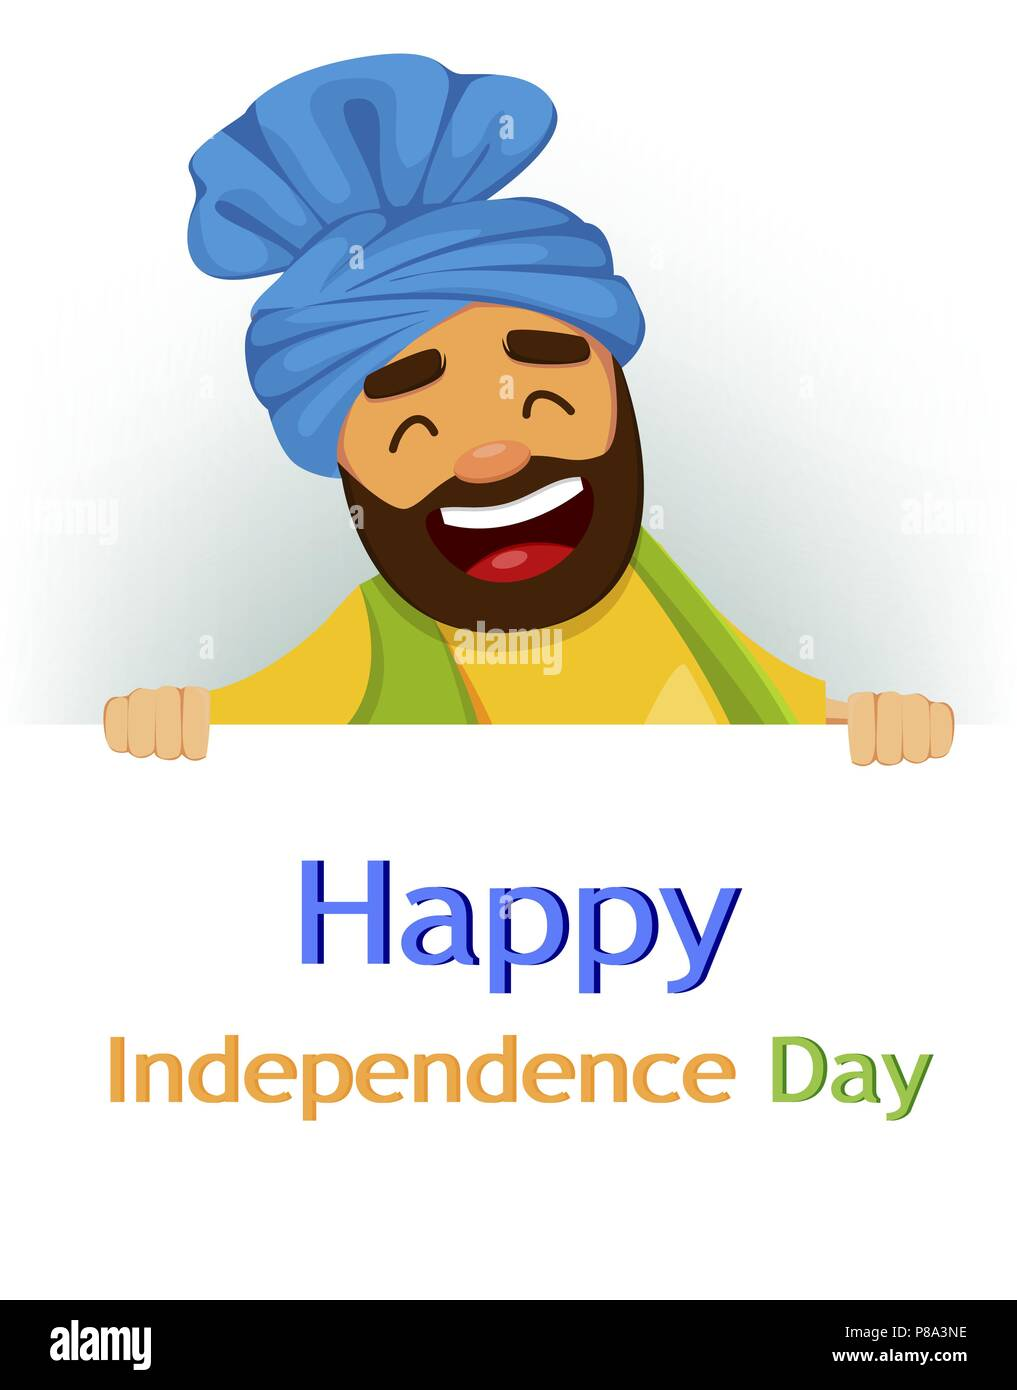 Happy Independence Day India Greeting Card Flyer Or Poster With